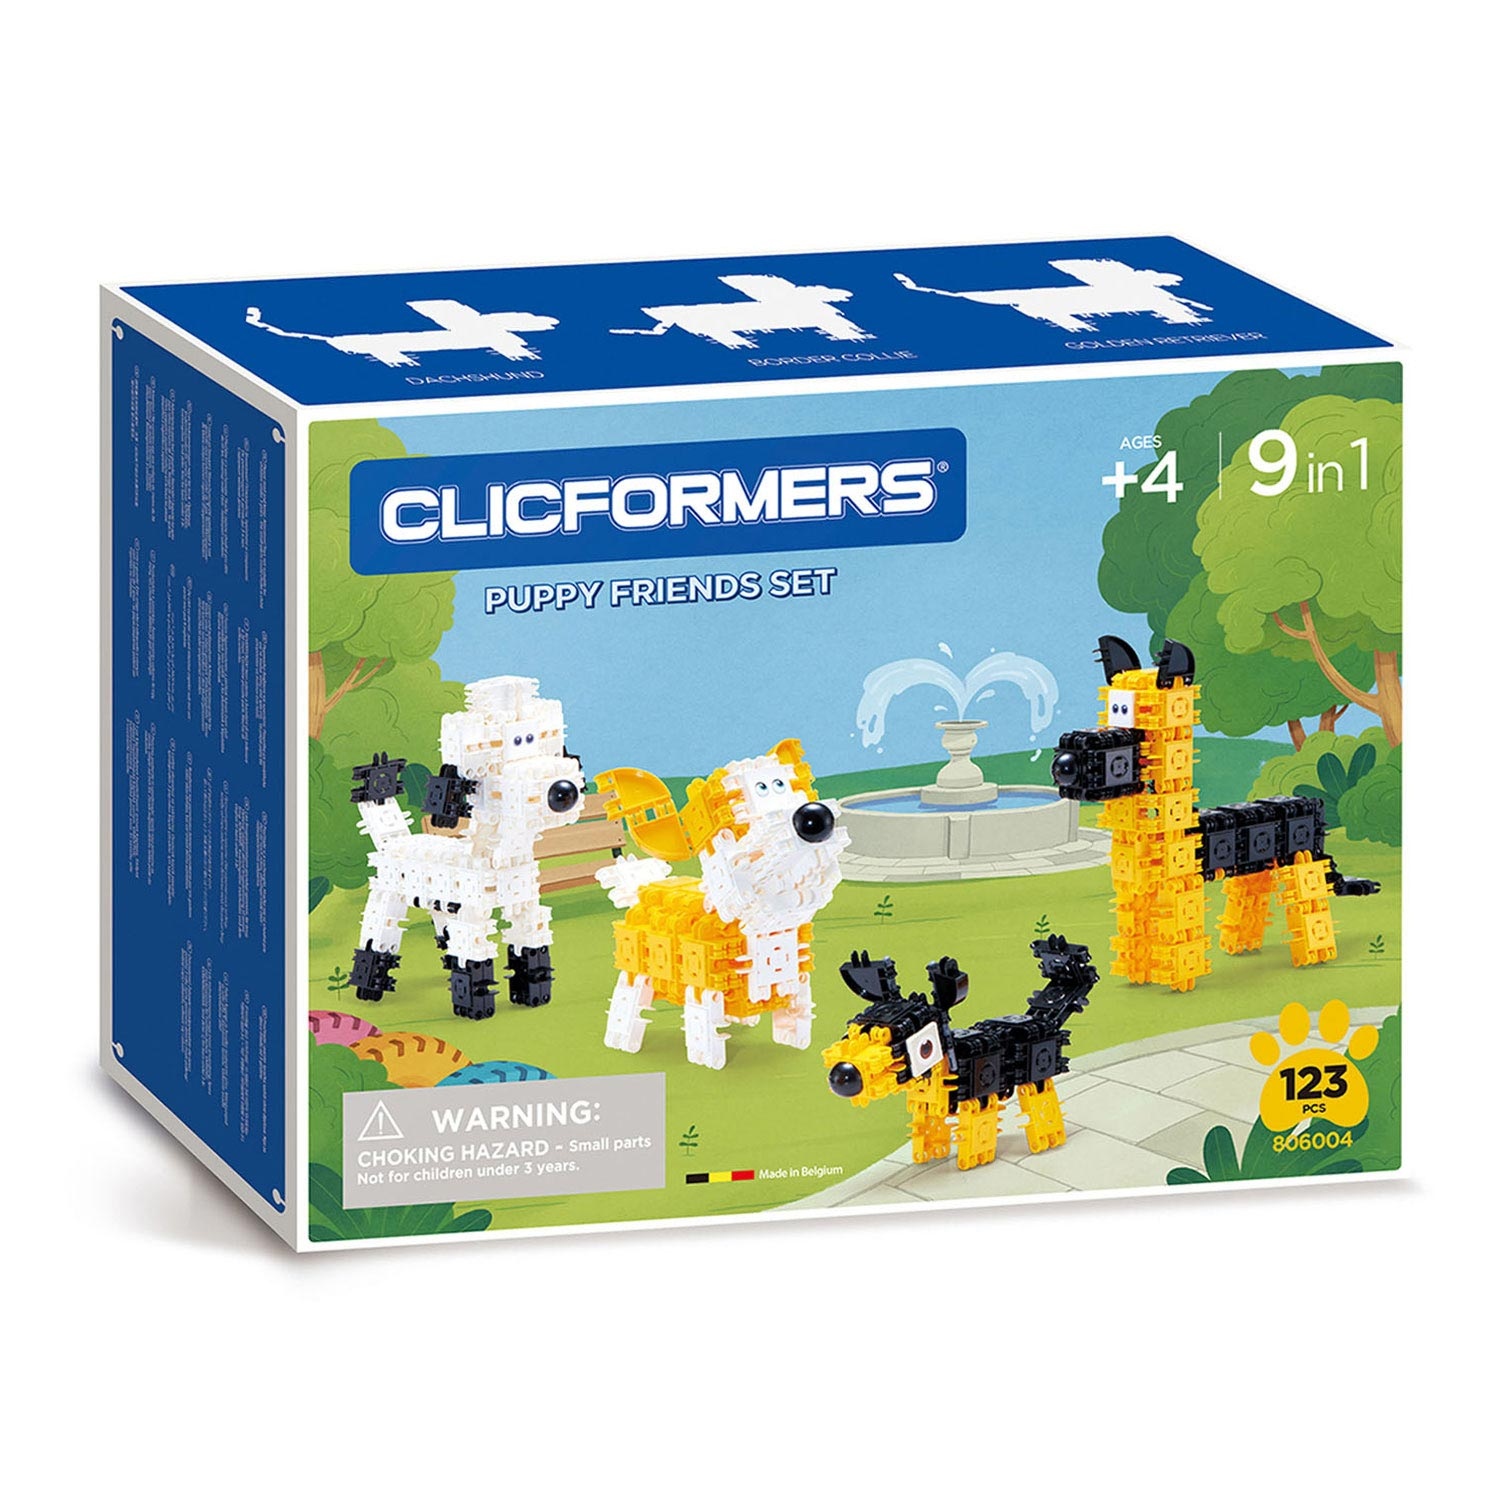 Clicformers Puppy Friends Set, 123dlg.